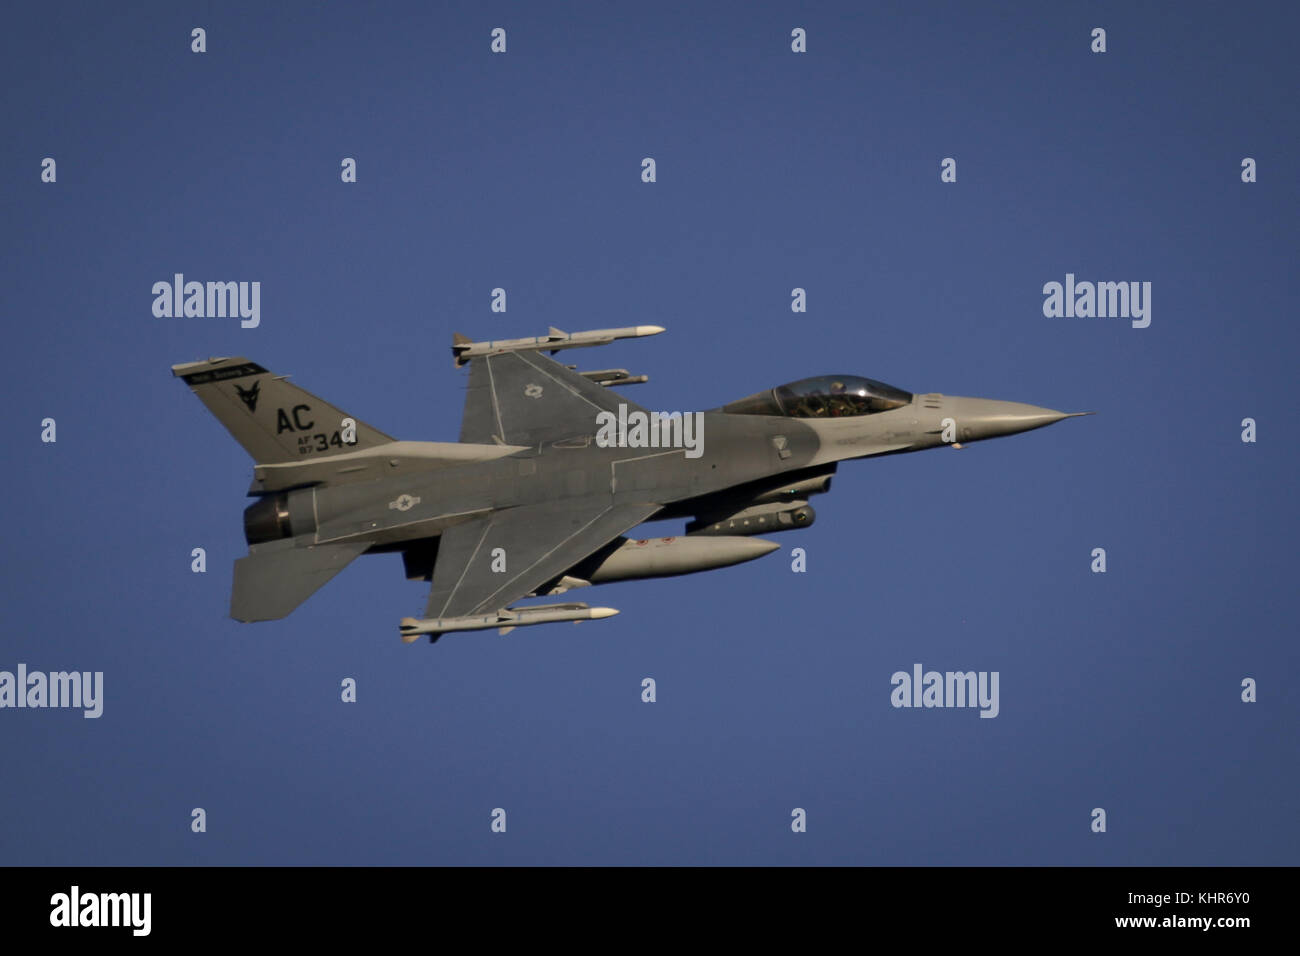 A New Jersey Air National Guard F-16C Fighting Falcon from the 177th Fighter Wing 'Jersey Devils' flies - Stock Image